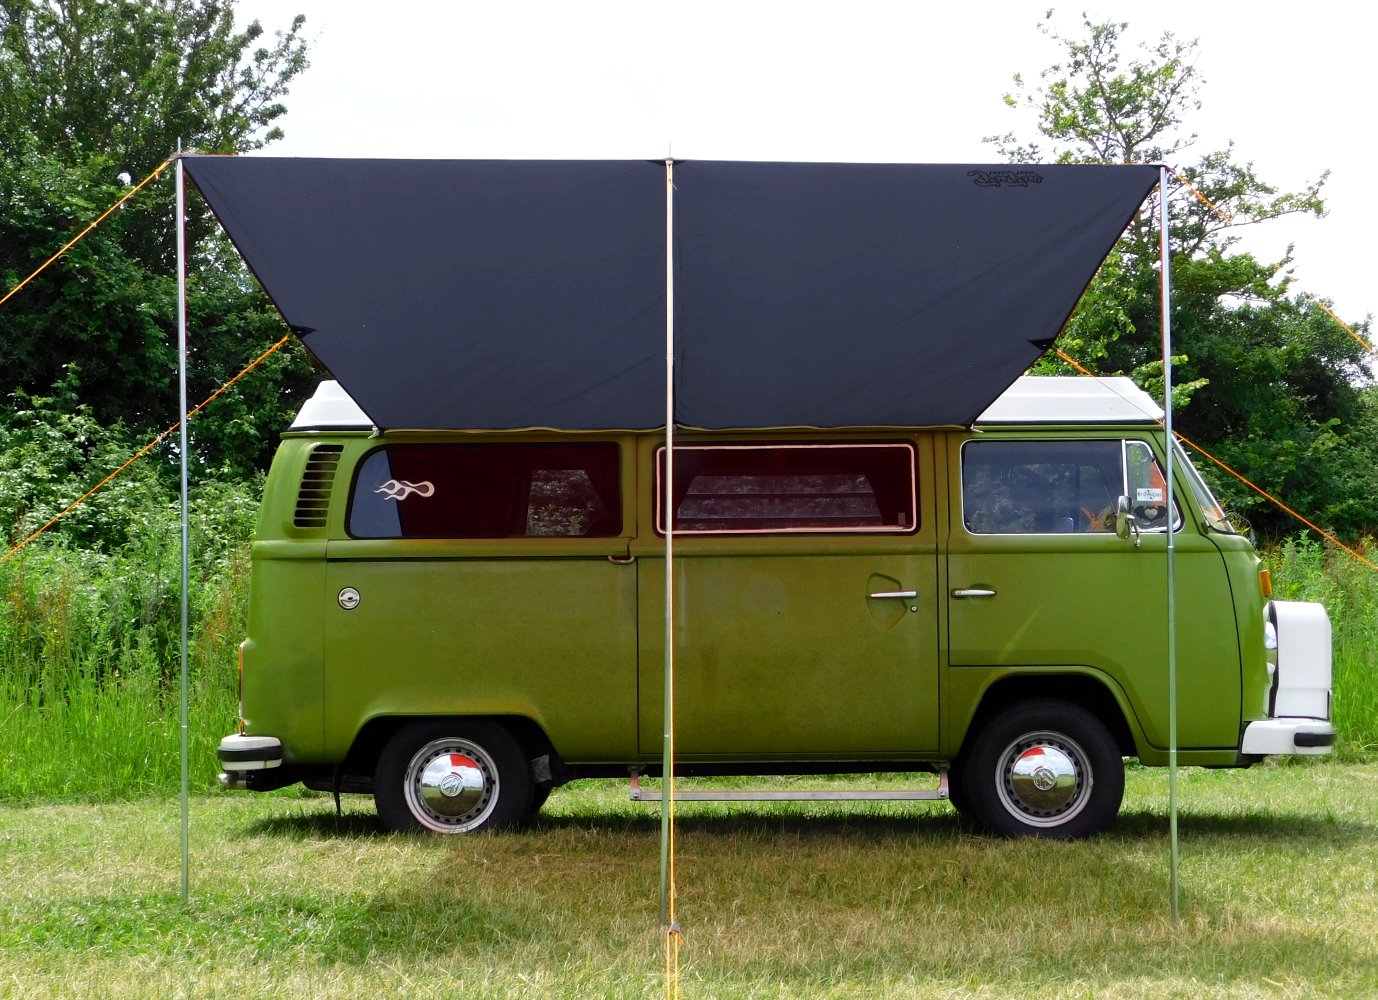 DEBUS Campervan Sun Canopy Awning - Anthracite Grey 2